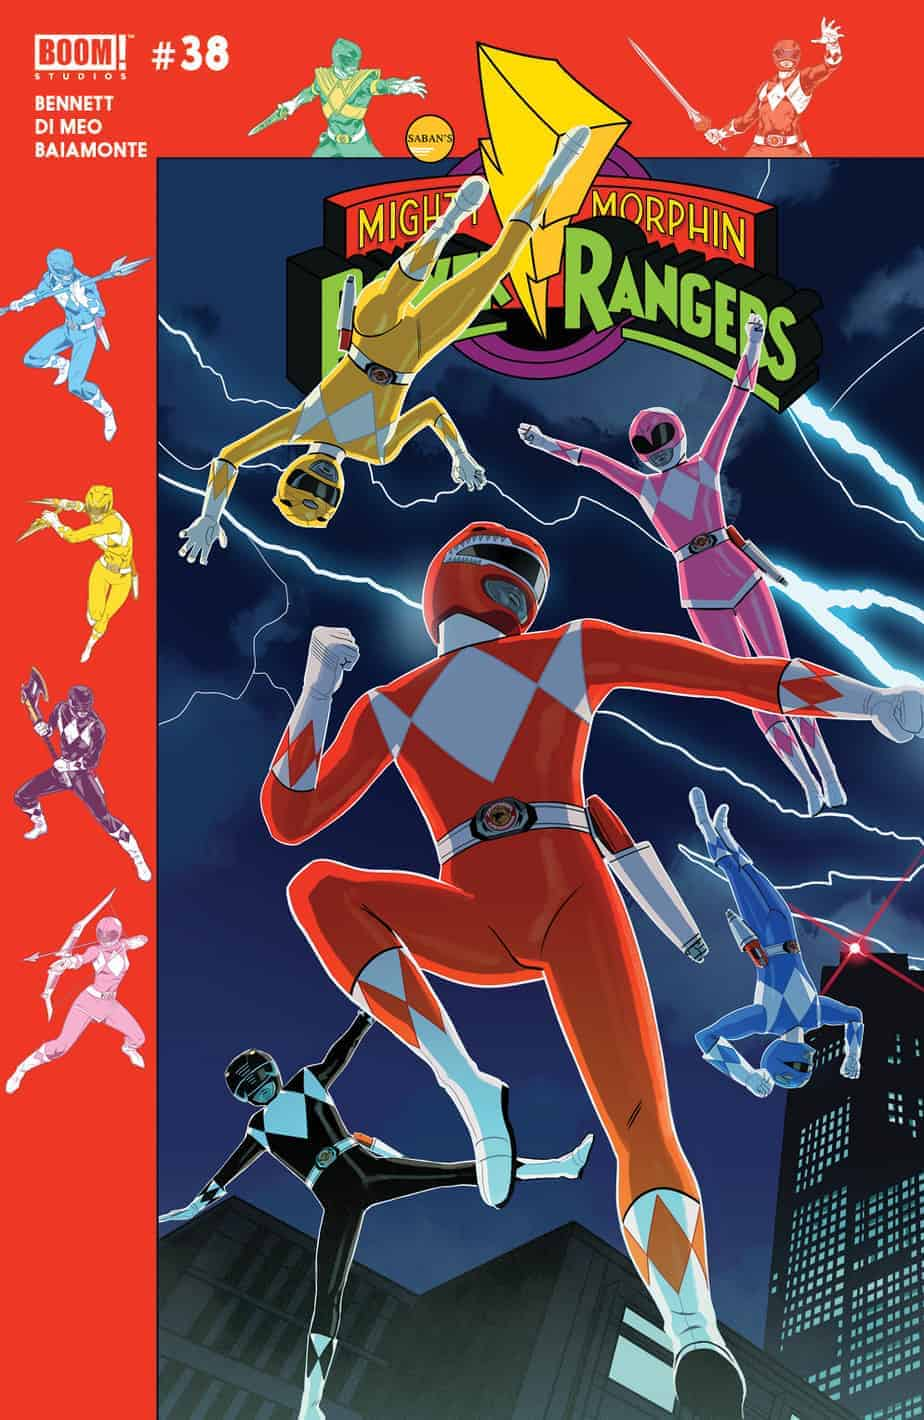 Mighty Morphin Power Rangers #38 - Preorder Cover